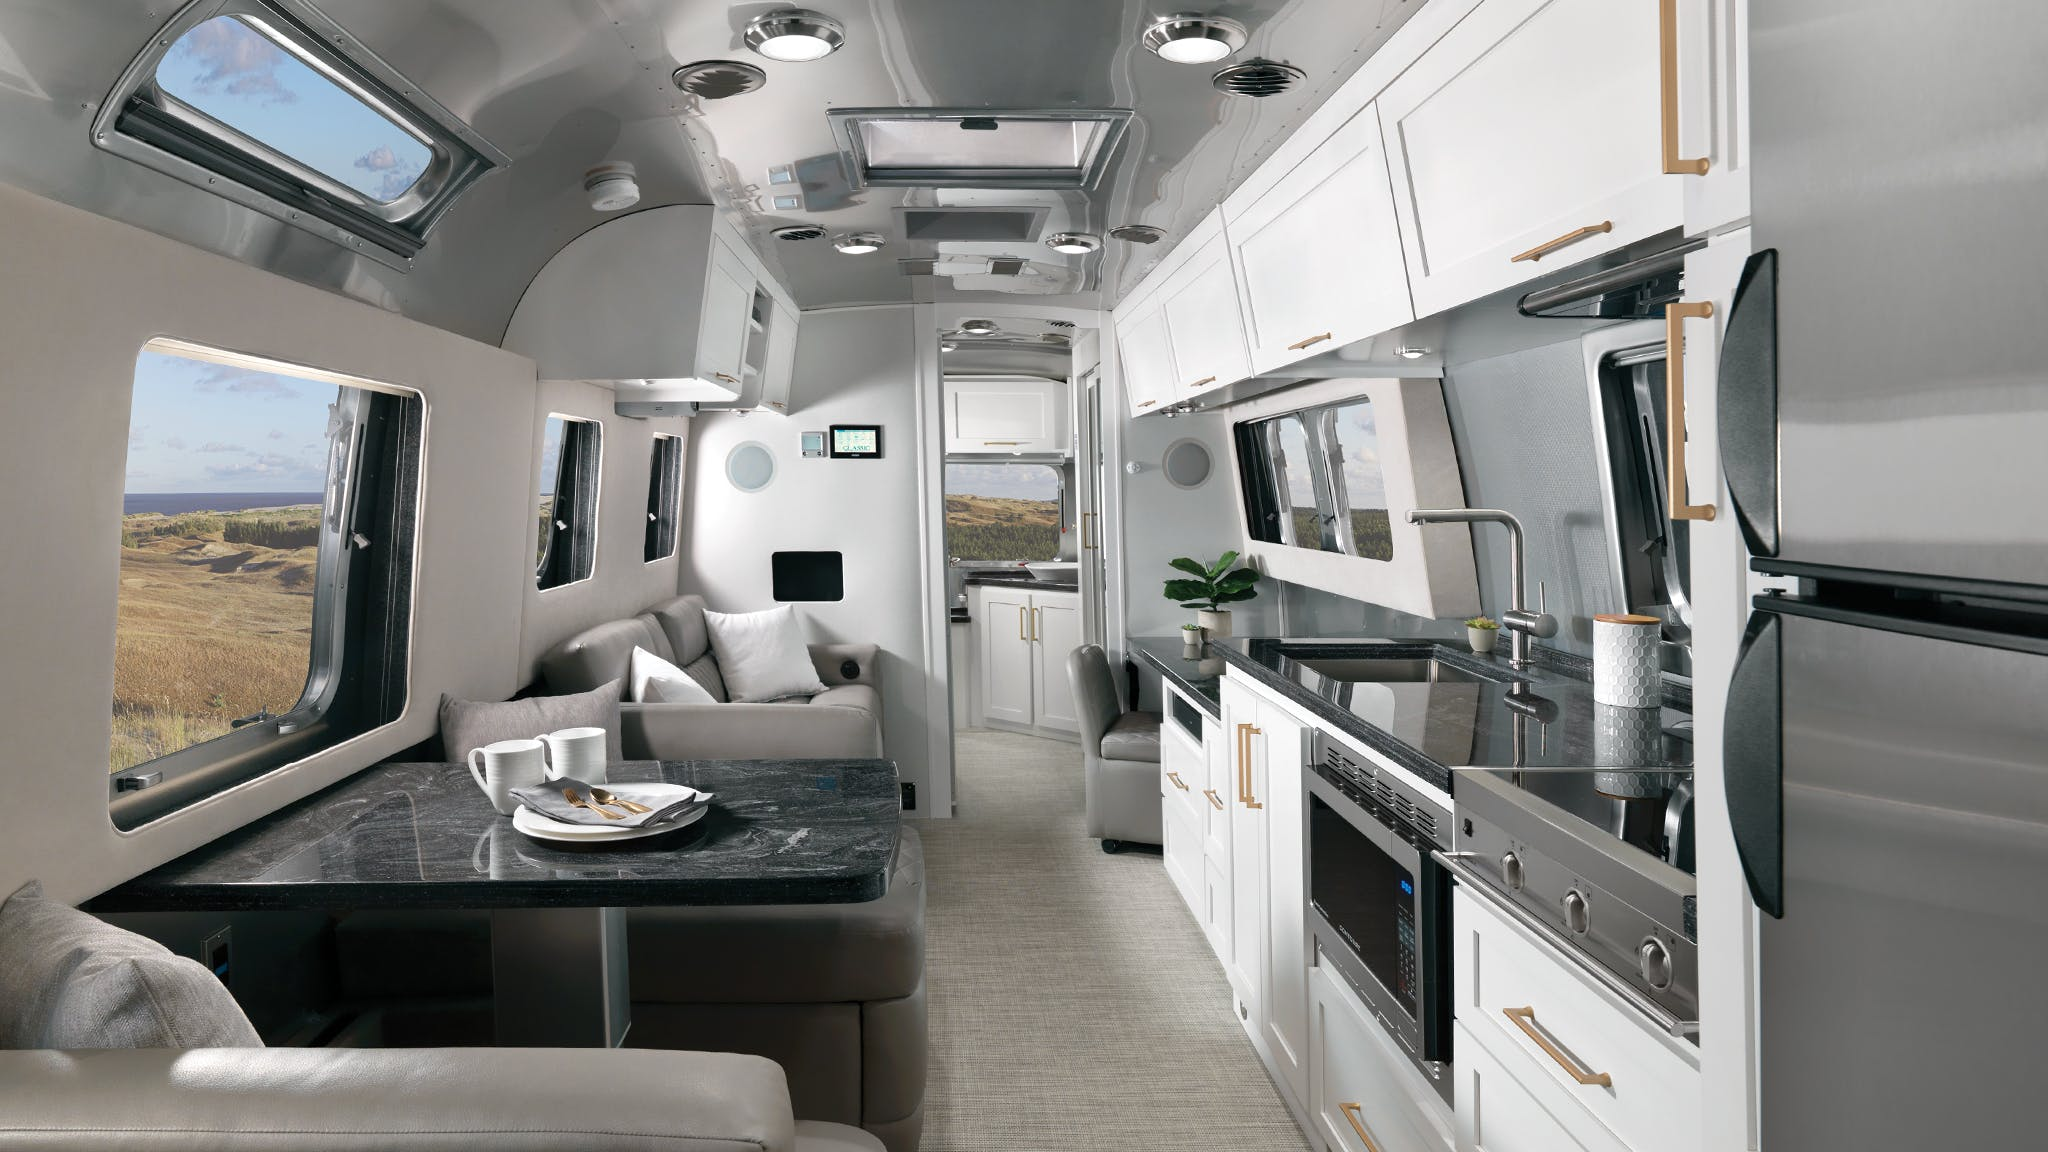 Airstream-Classic-2020-Comfort-White-Interior-Decor-Desktop-Feature